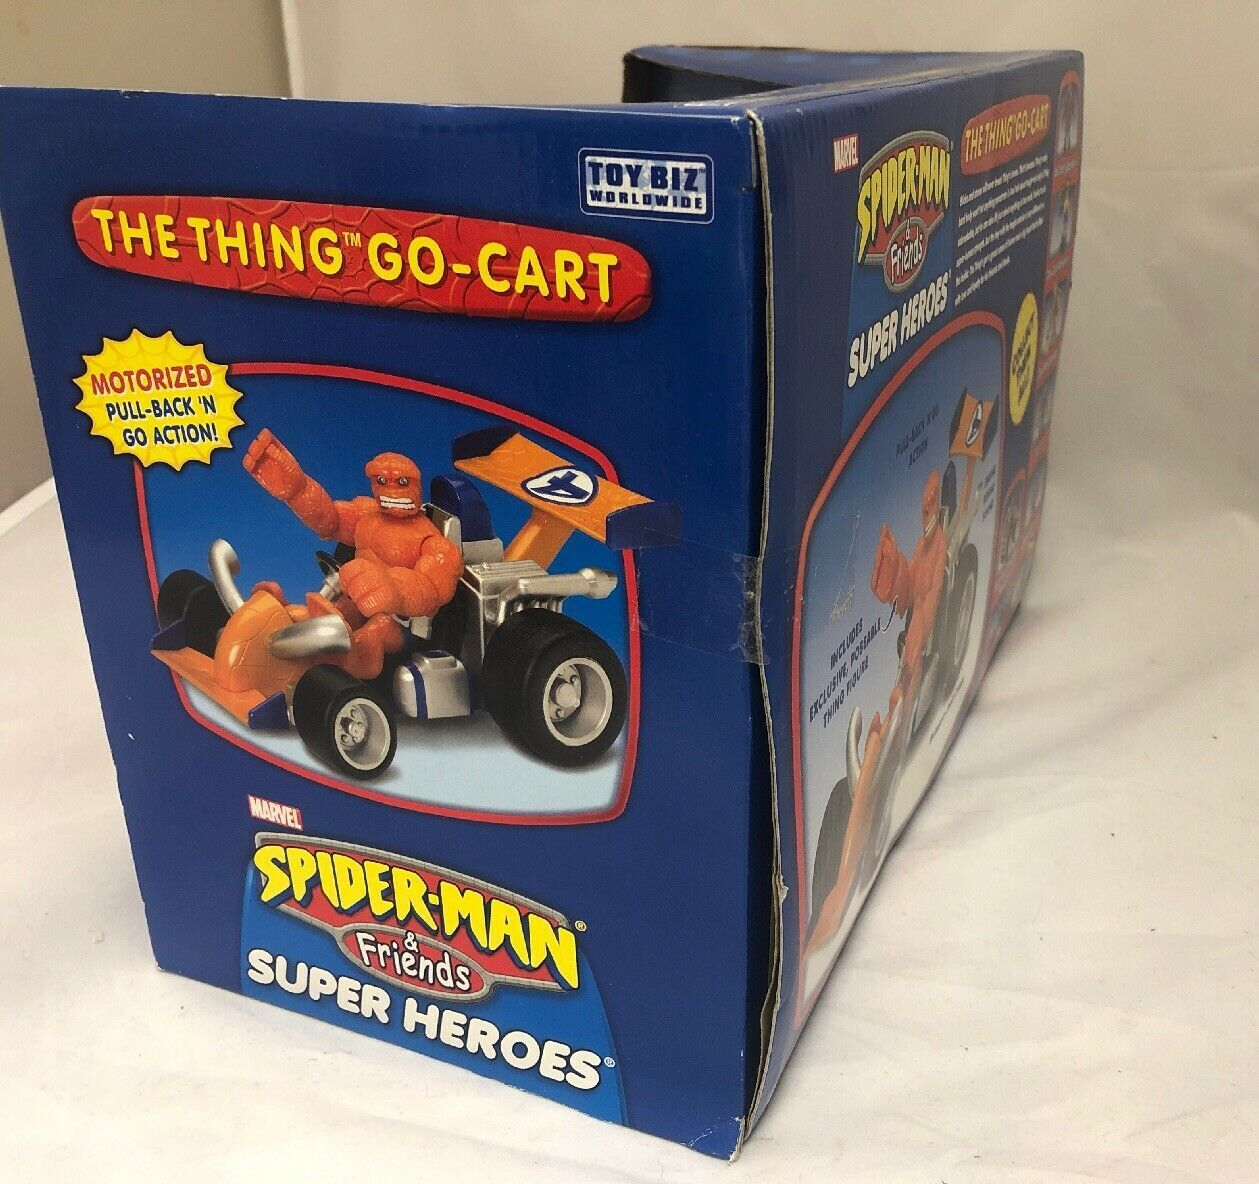 Marvel Spider-Man & Friends The Thing You Go- Cart Motorized Pull Back Go Action image 5